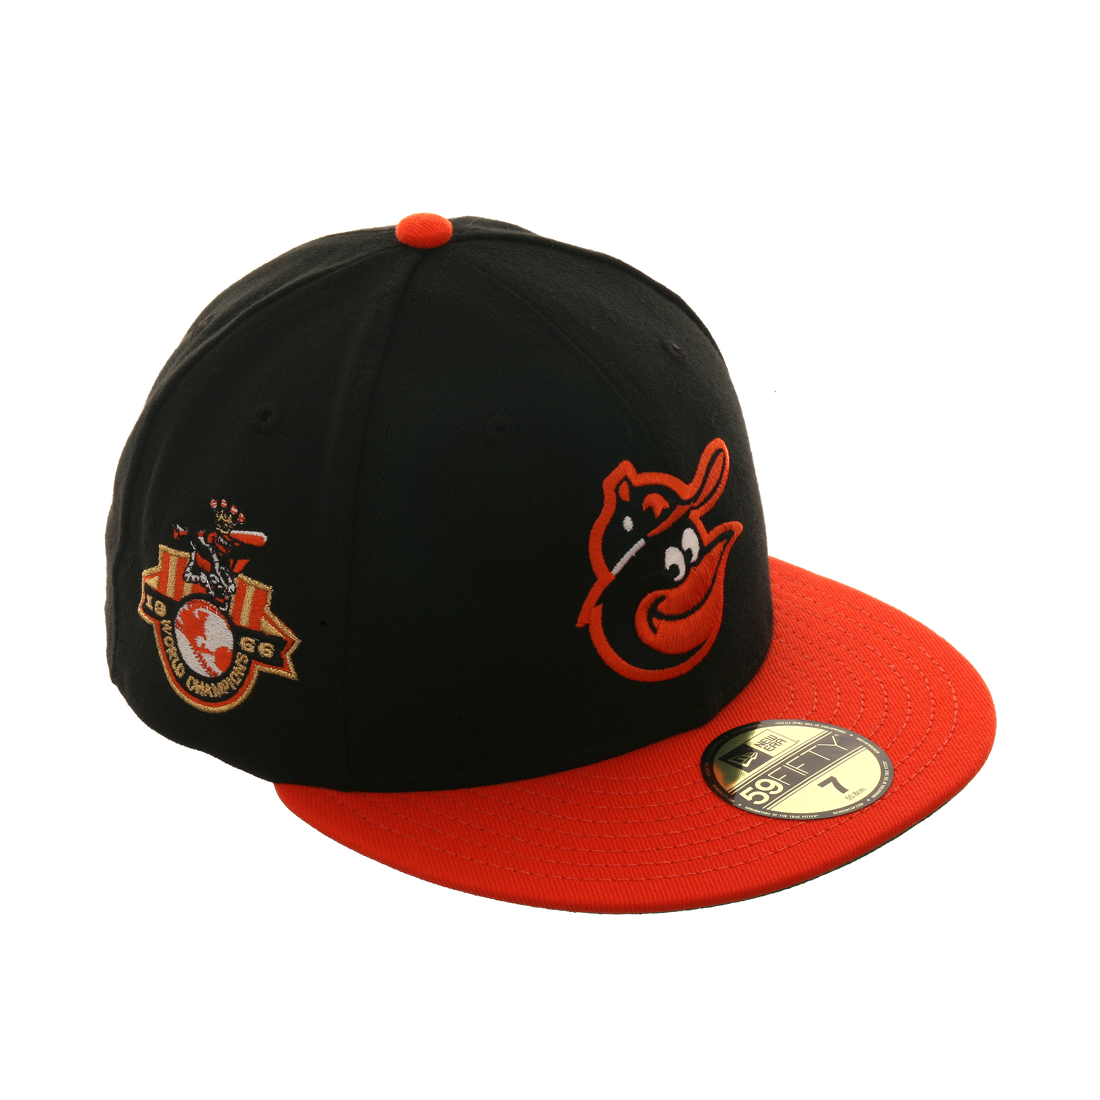 035bfec4611 Exclusive New Era 59Fifty Baltimore Orioles 1966 World Series Patch Hat - 2T